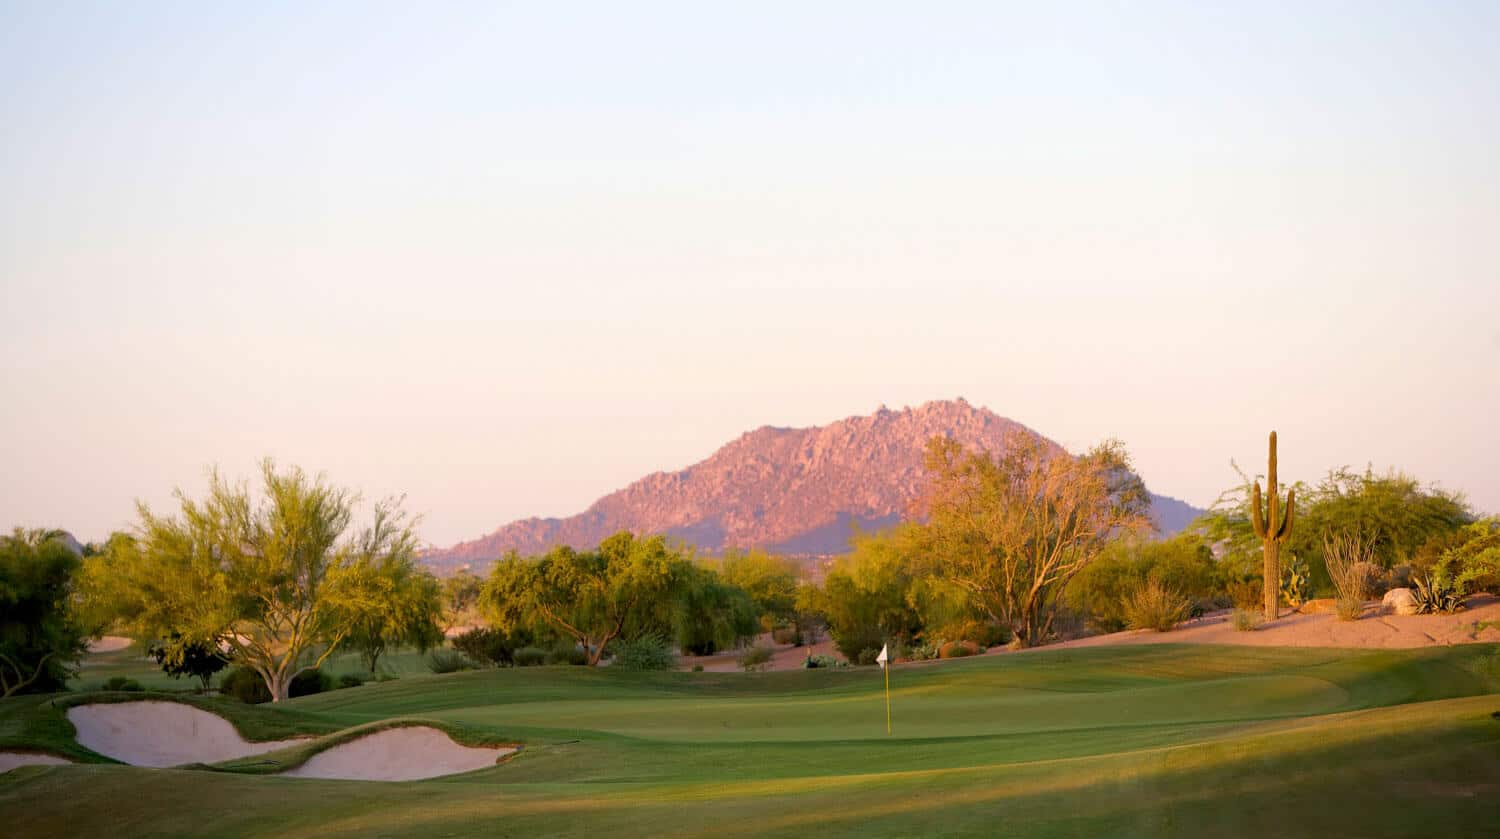 golf course in front of mountains